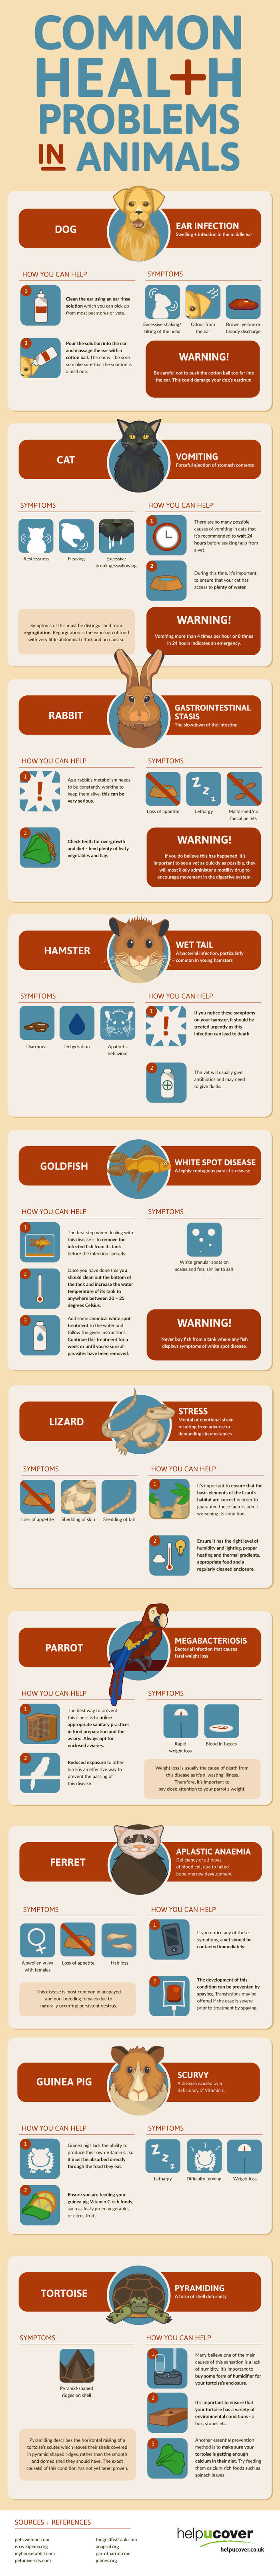 Common Health Problems In Animals